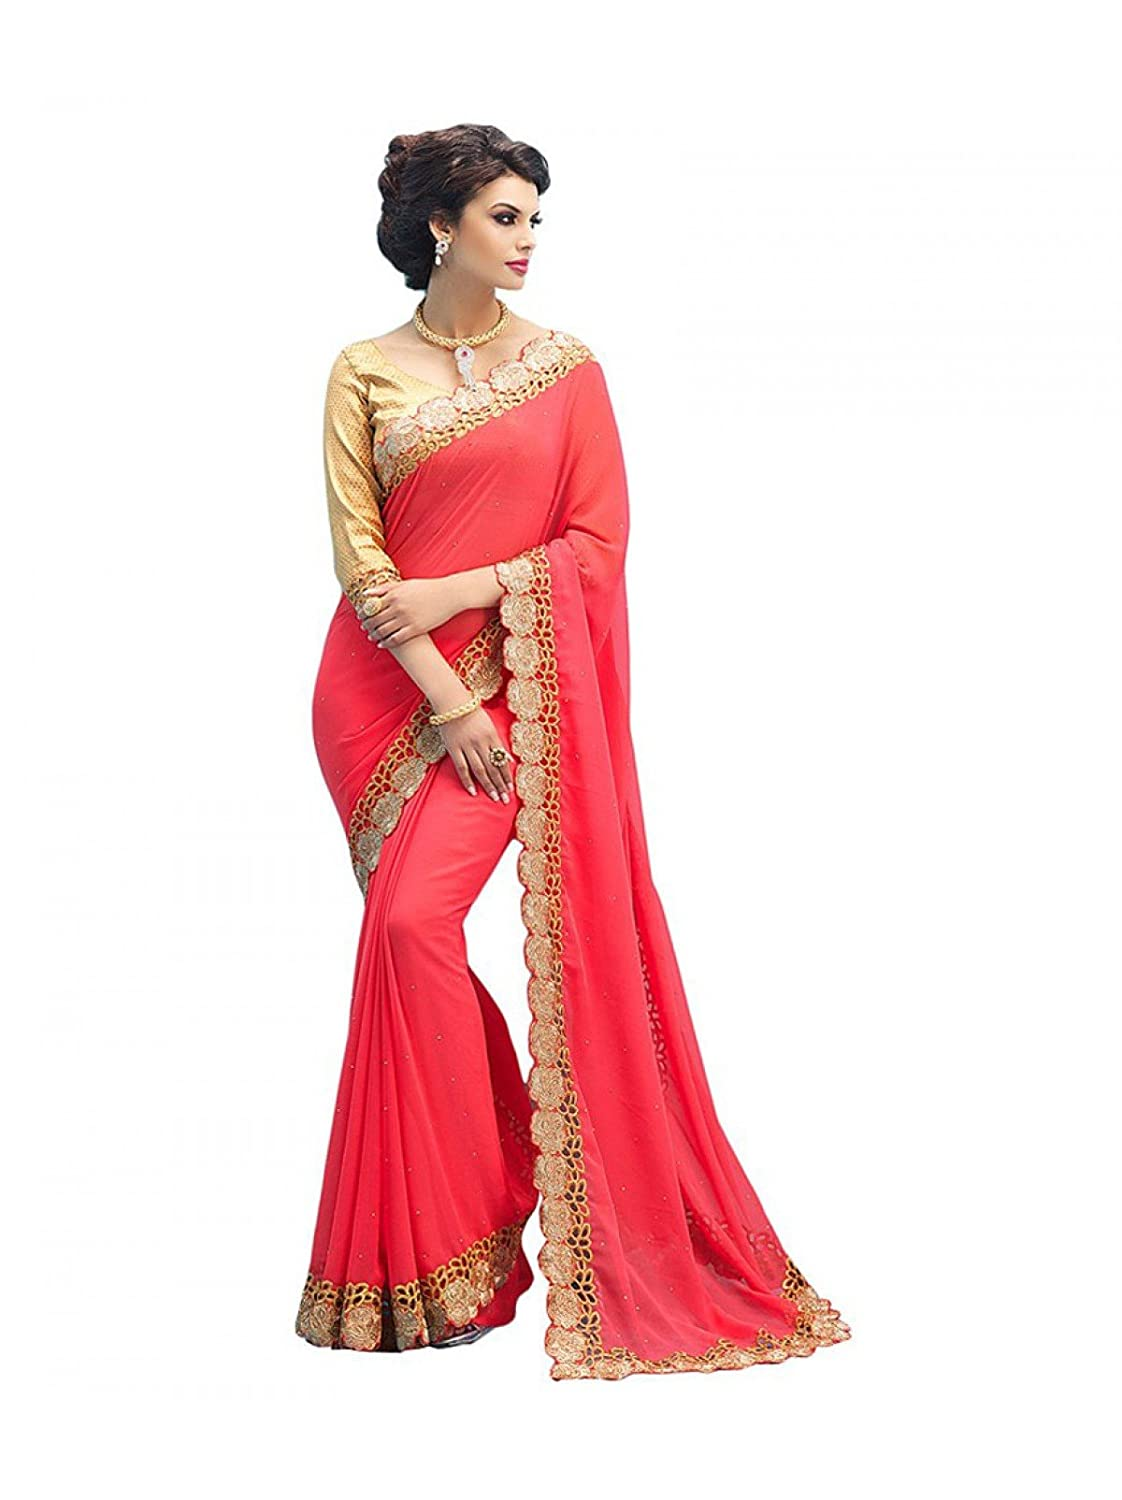 0e69007e0c Saree for women's and girls Pink embroidered georgette saree with blouse  piece: Amazon.in: Clothing & Accessories